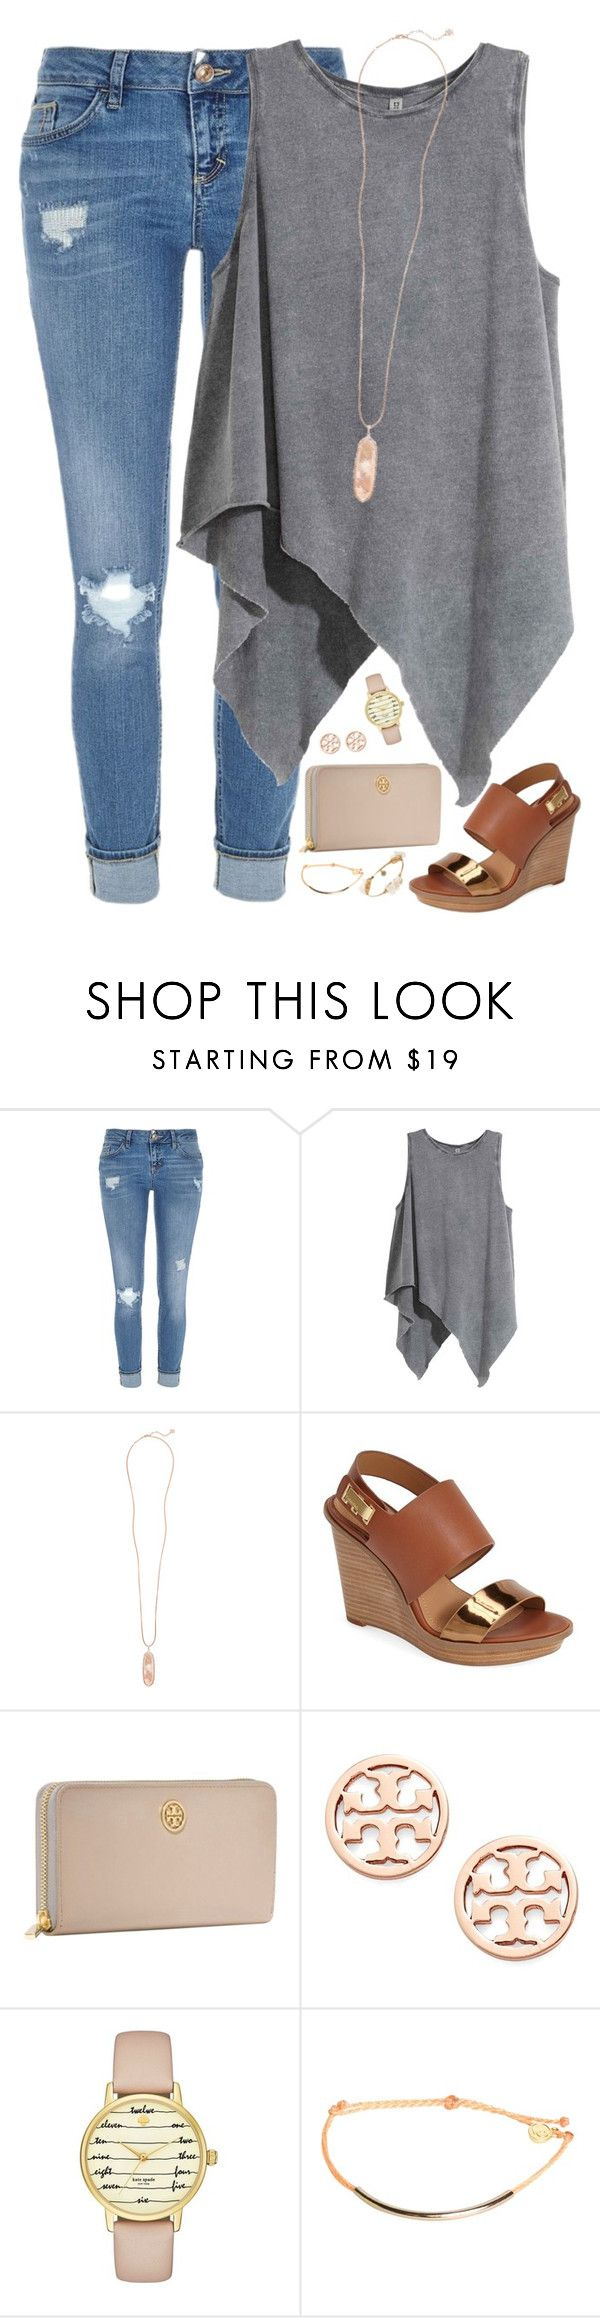 """""""I wonder if you ever talked about me to someone.."""" by kaley-ii ❤ liked on Polyvore featuring River Island, Kendra Scott, Calvin Klein, Tory Burch, Kate Spade, Pura Vida and Bourbon and Boweties"""